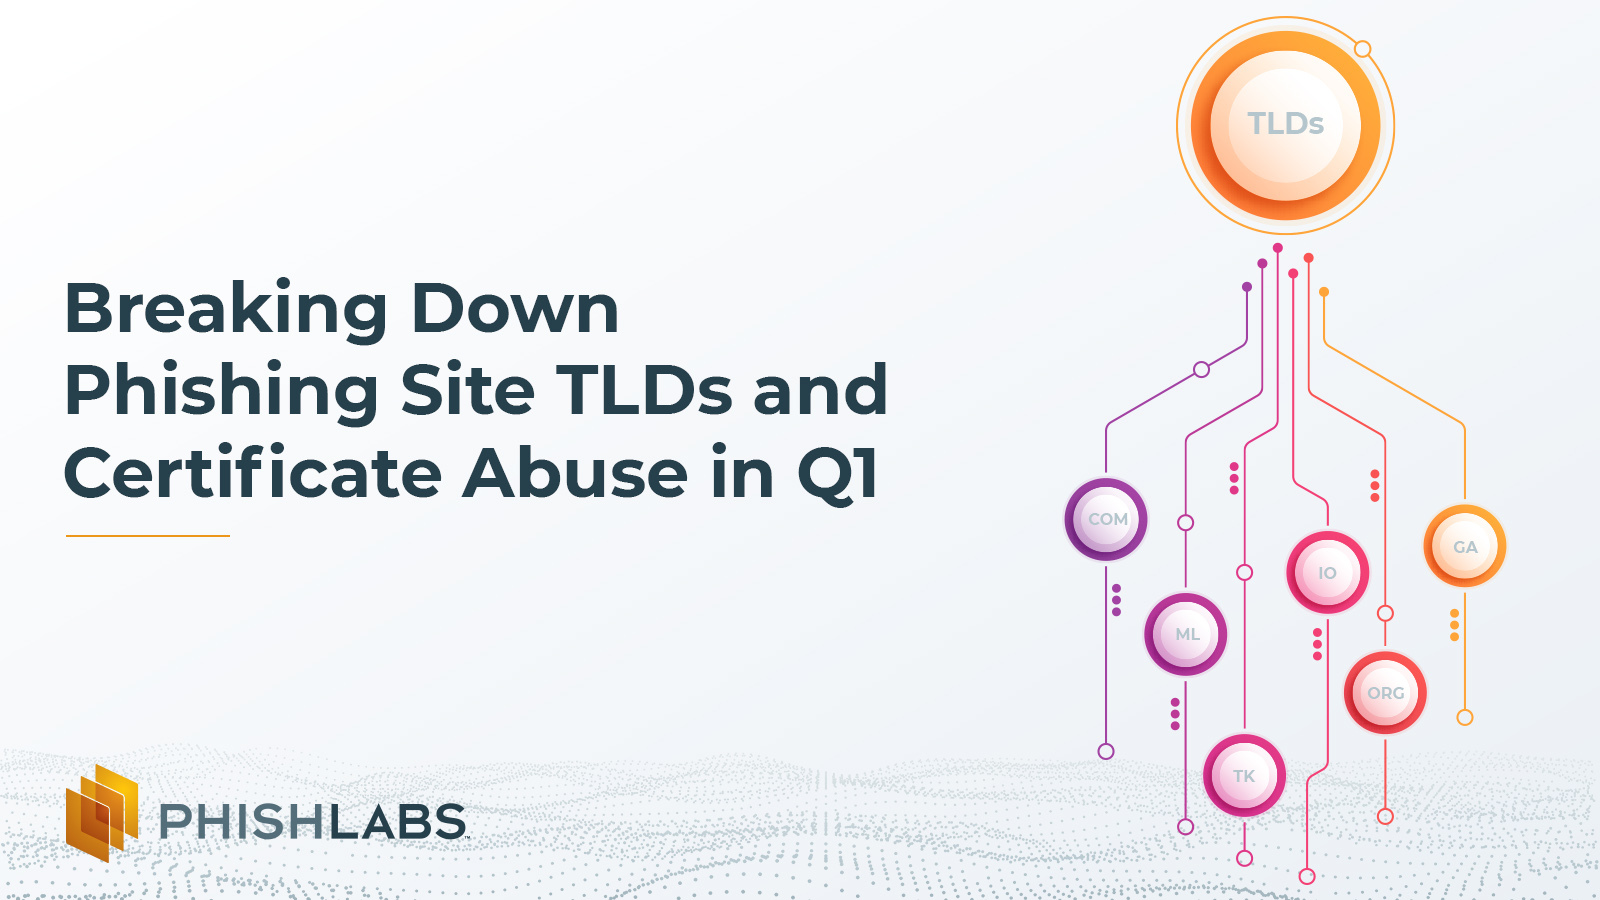 Breaking-down-phishing-site-tlds-and-certificate-abuse-in-q1